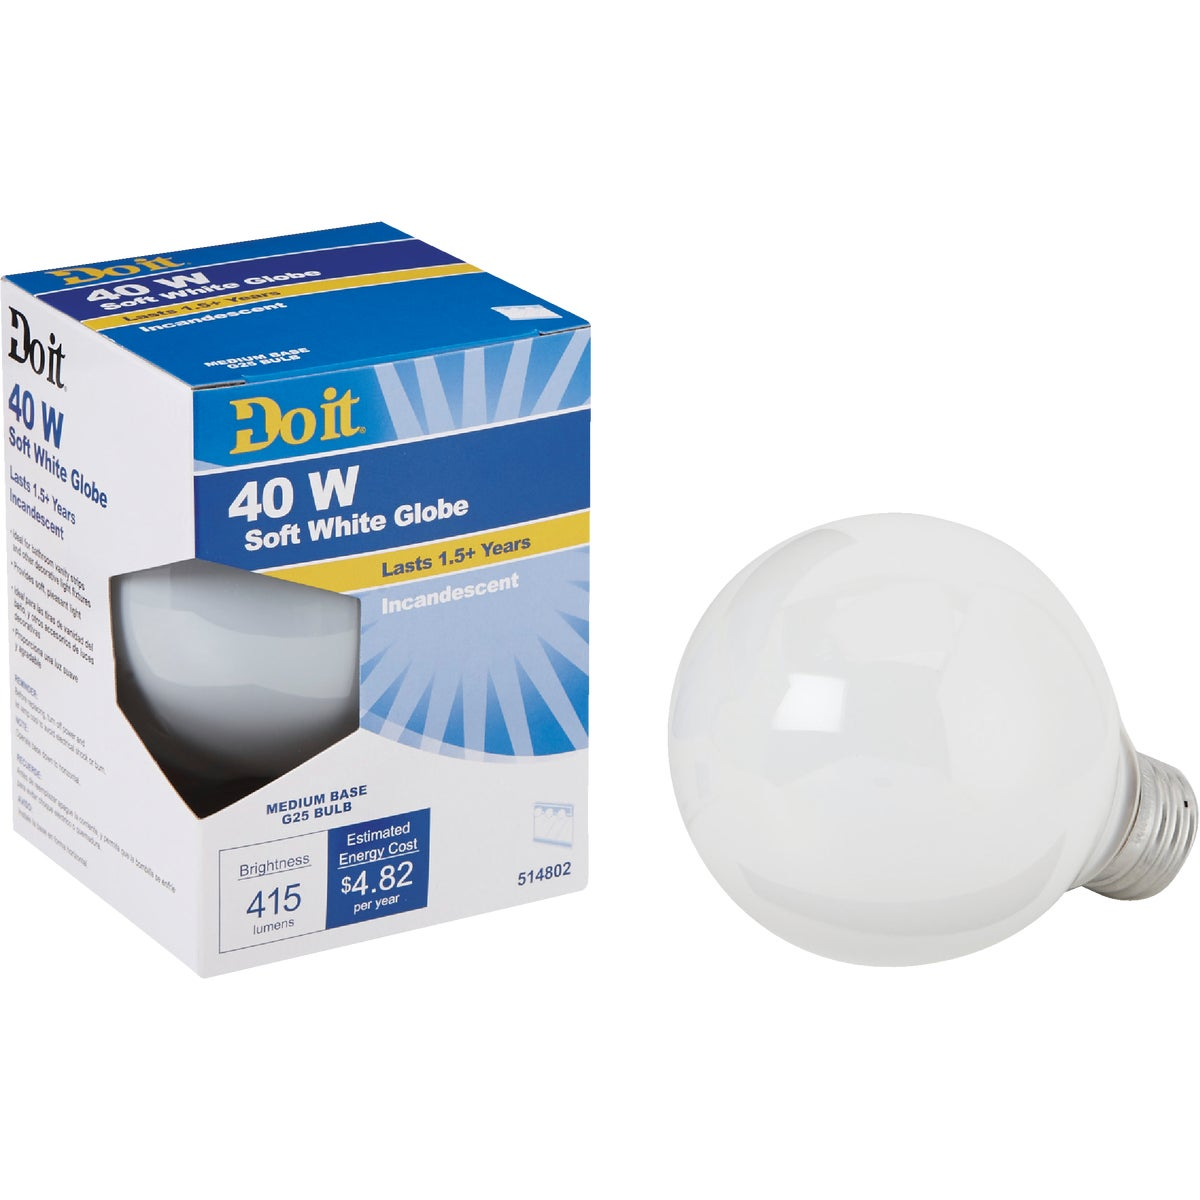 40W WHT 3-1/8GLOBE BULB - 17865 by G E Private Label